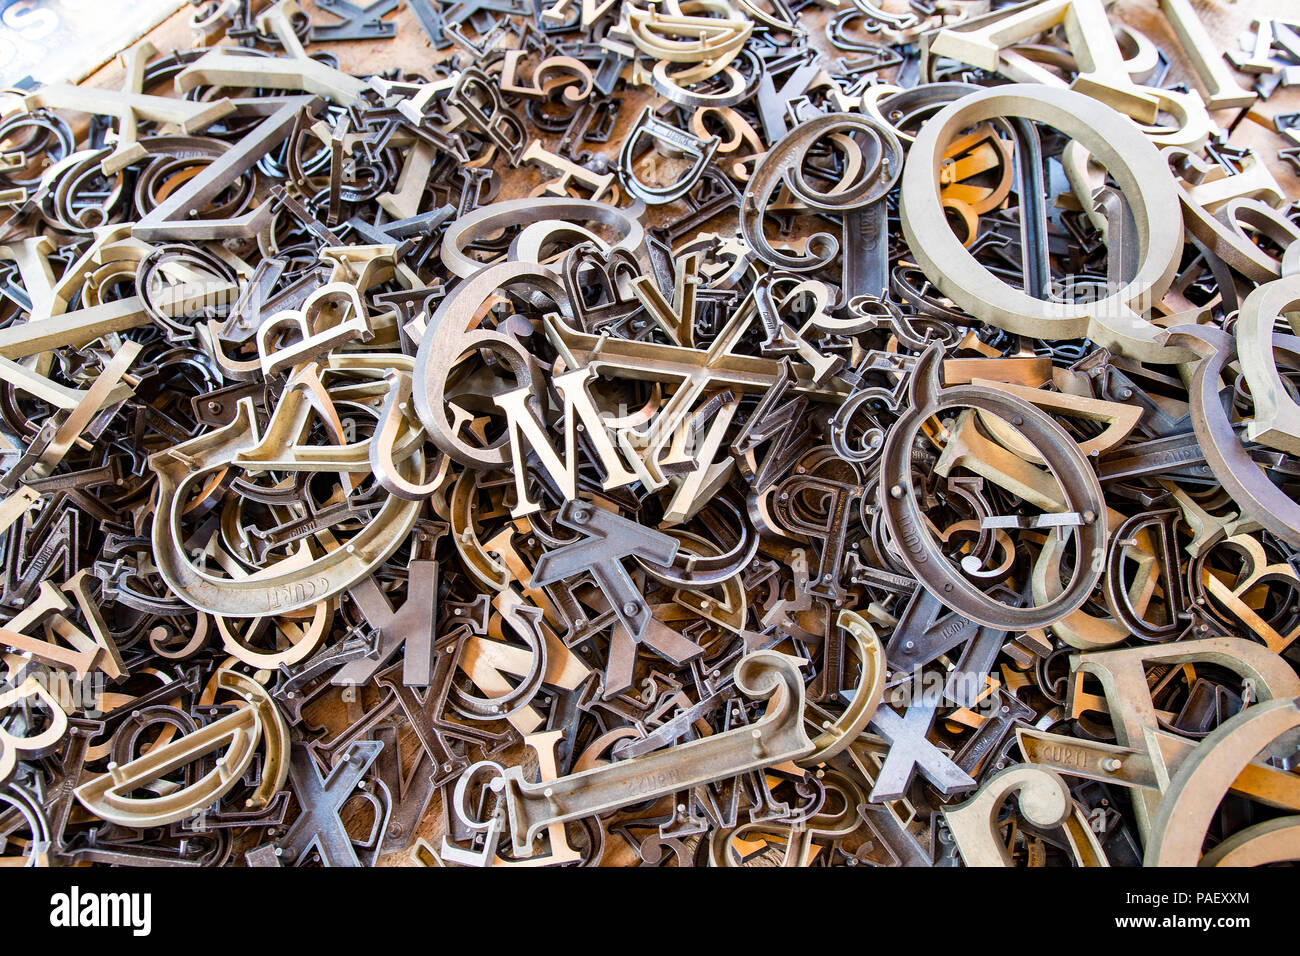 Bunch of old rusty metal letters - Stock Image